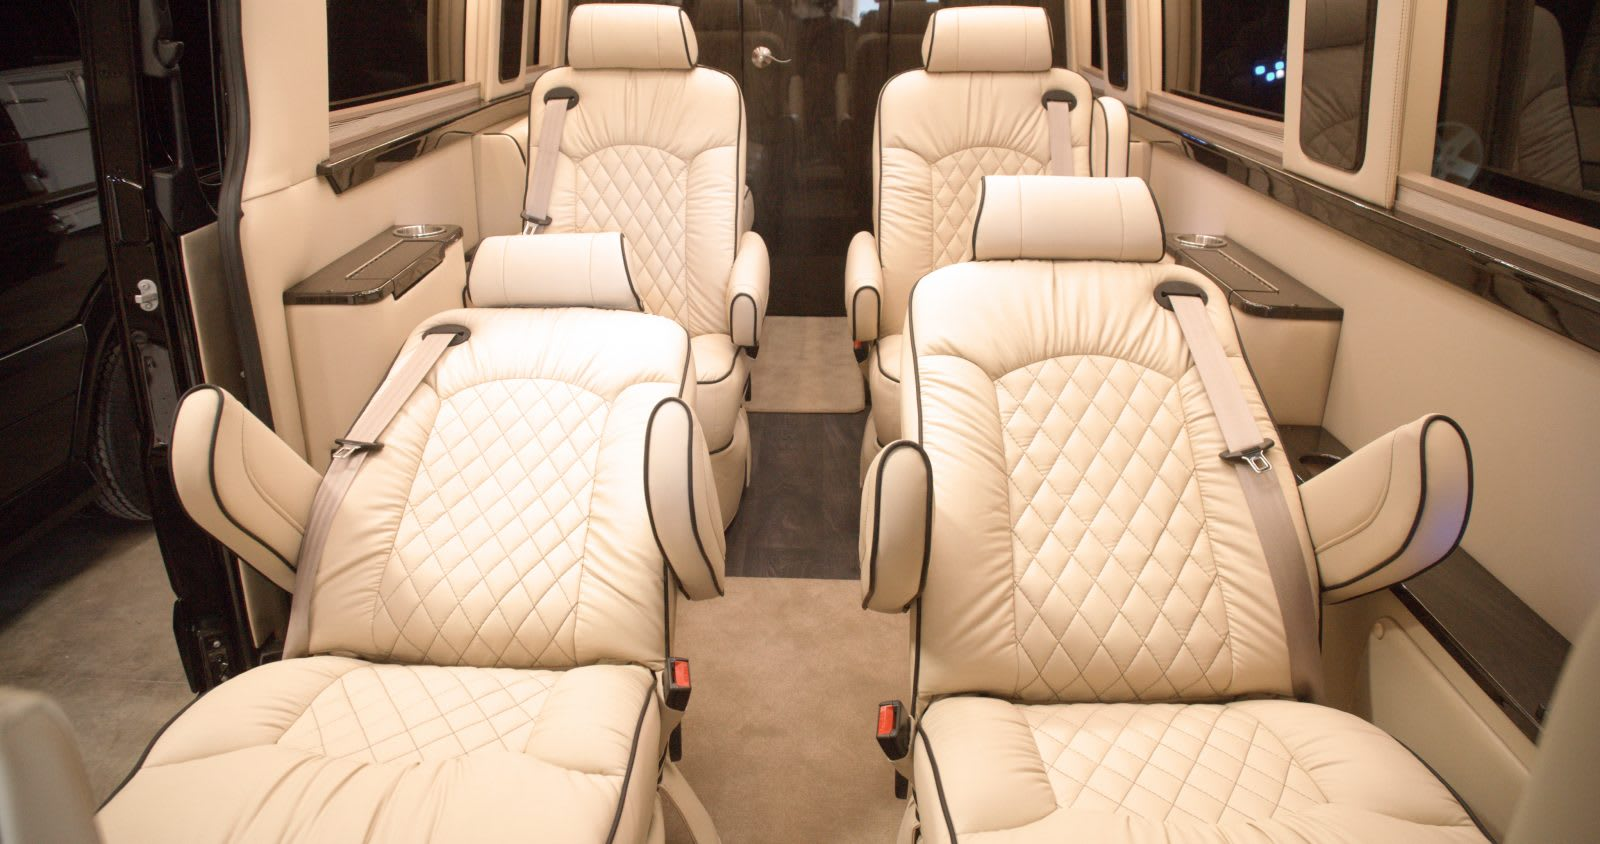 Captains chairs recline and have powered foot rest. Midwest Automotive Designs Presidential 2020